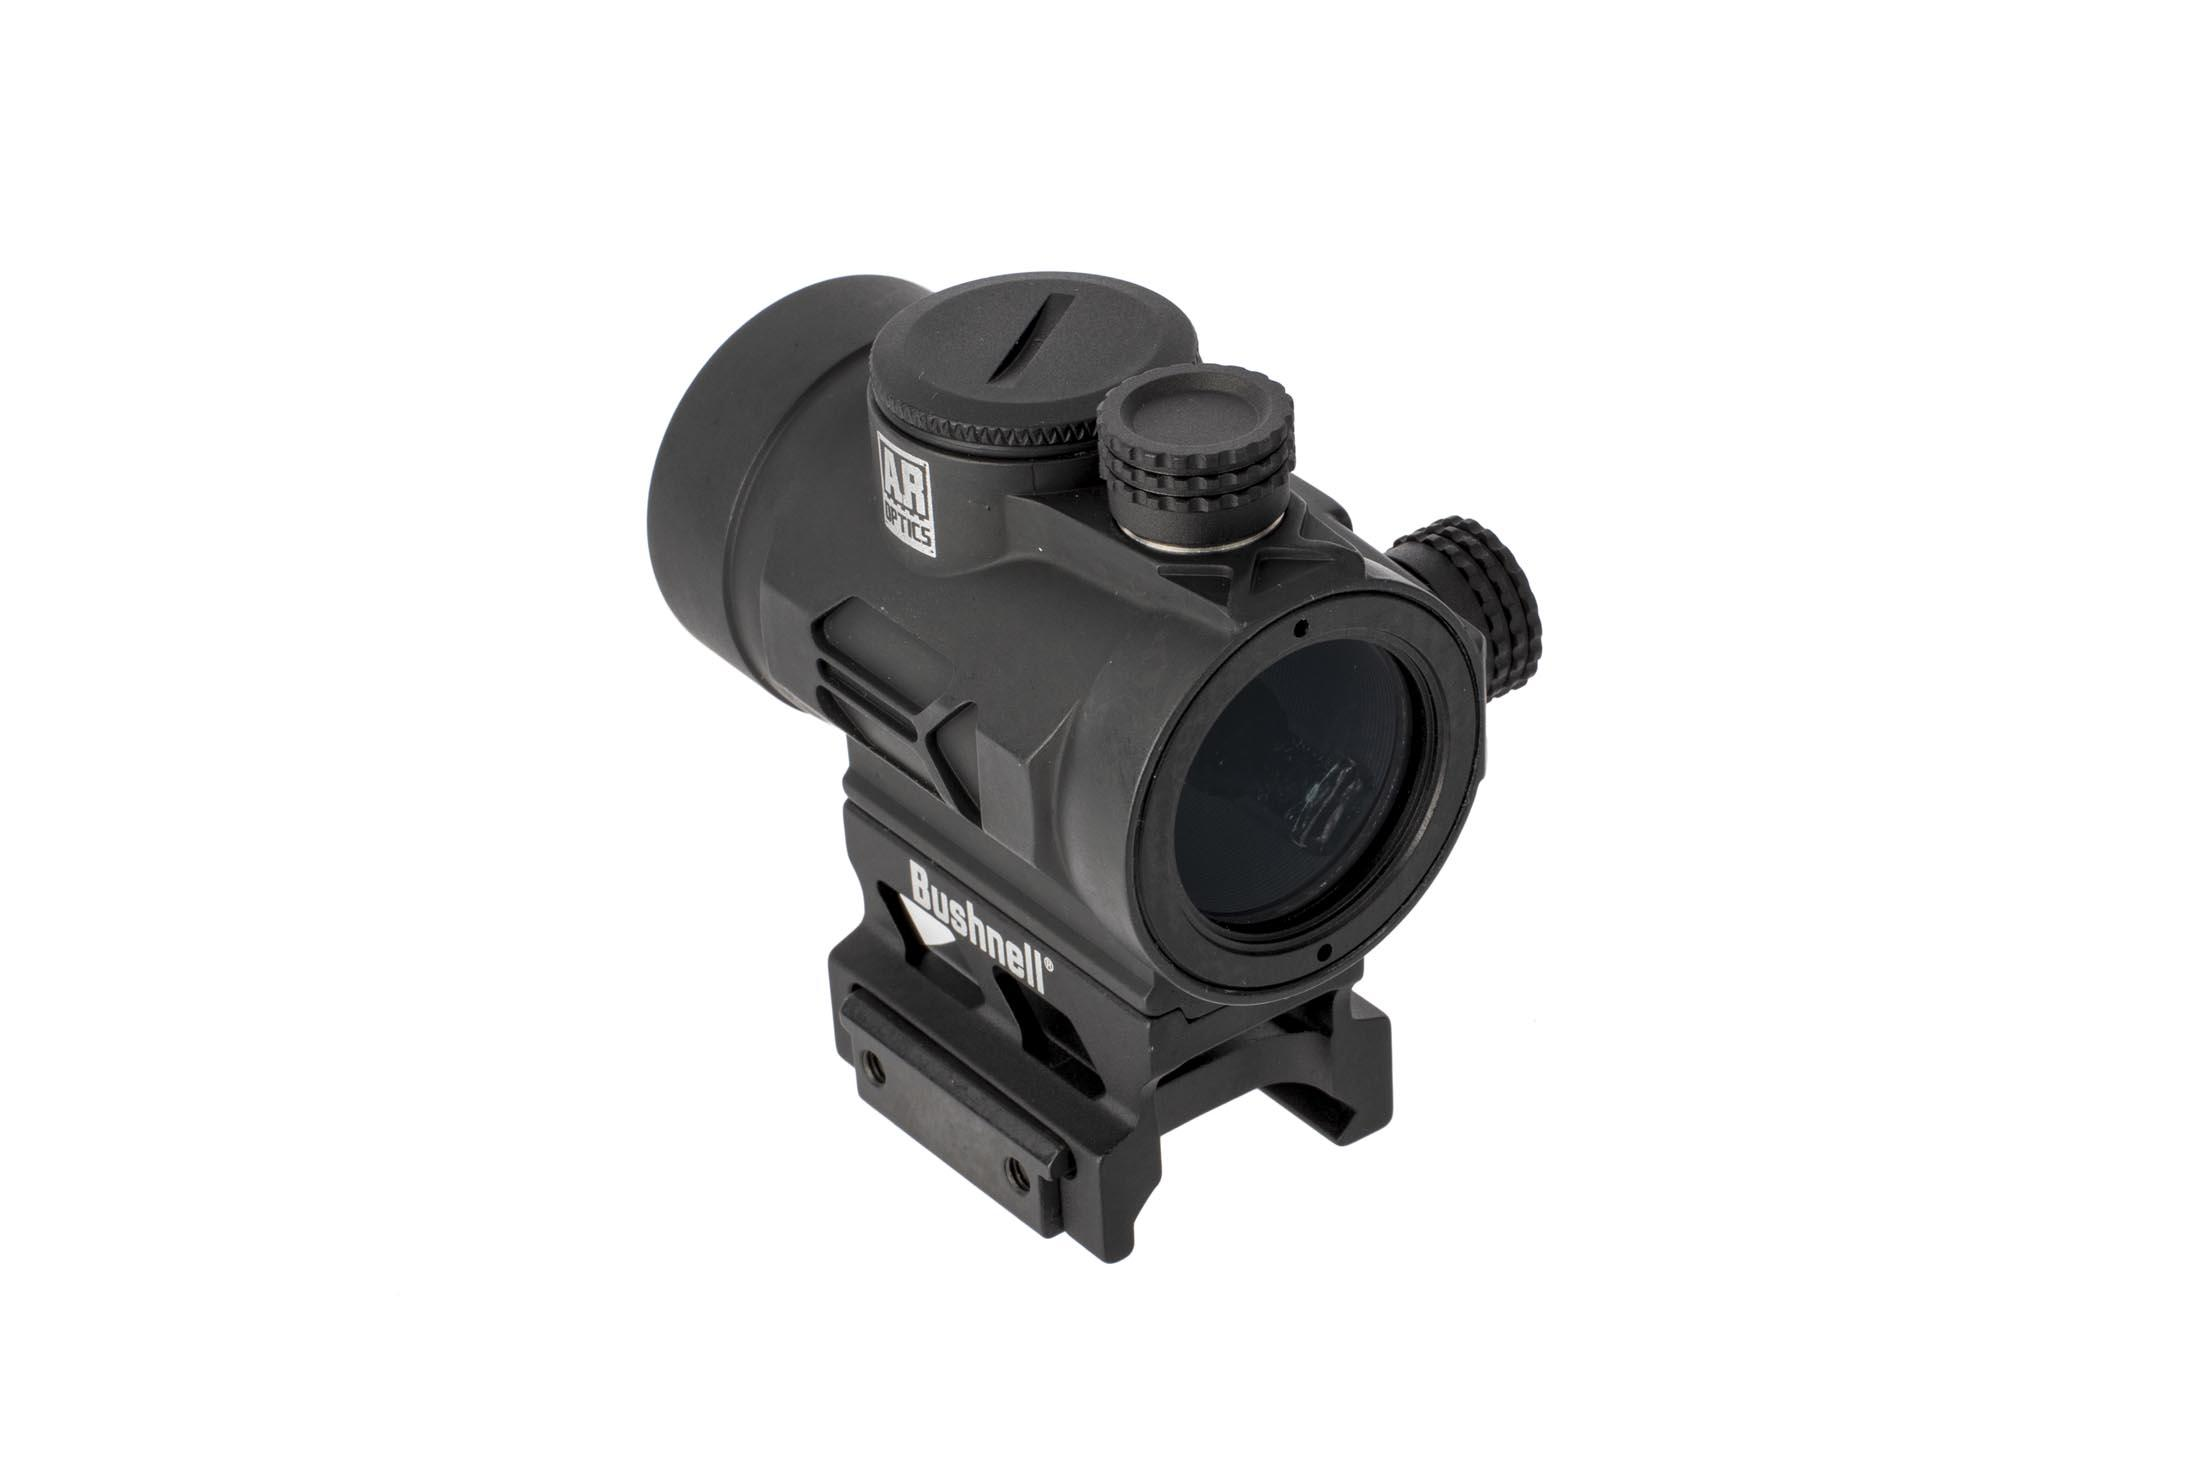 Bushnell AR Optics TRS26 1x25mm features a low profile emitter that won't interfere with sight picture